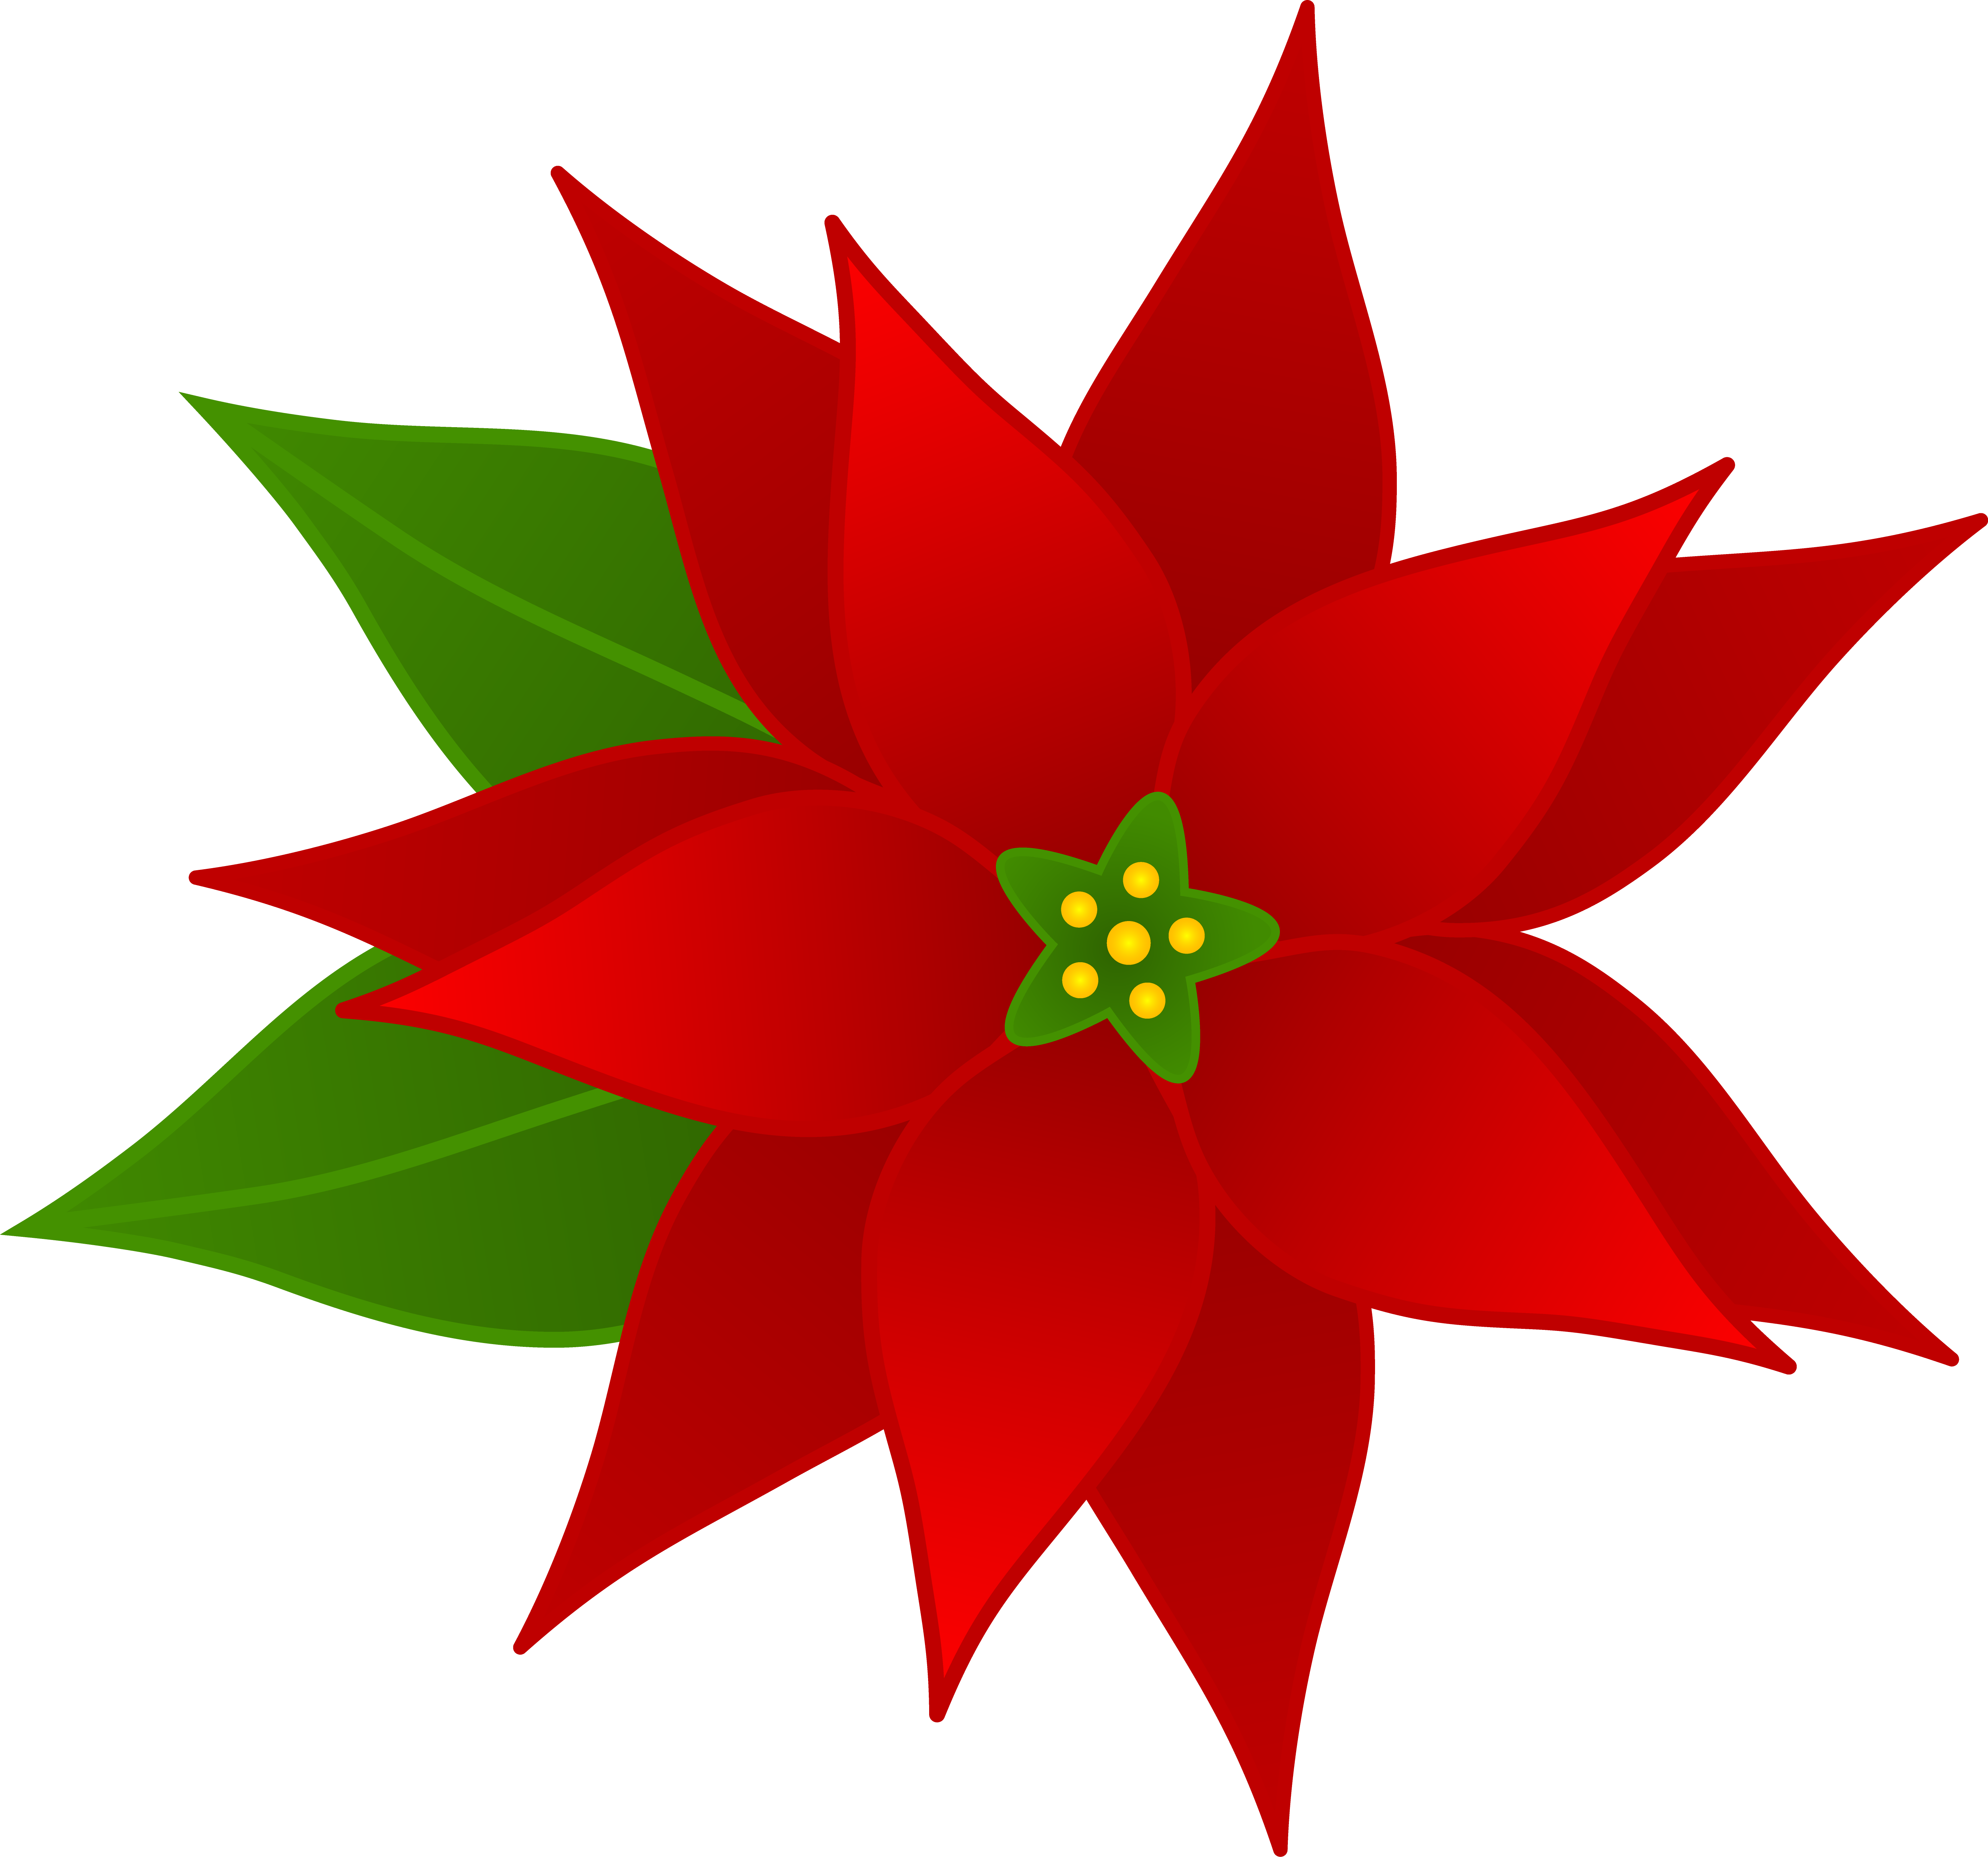 Christmas flowers pictures free clipart transparent library Christmas flowers free clipart - ClipartFest clipart transparent library